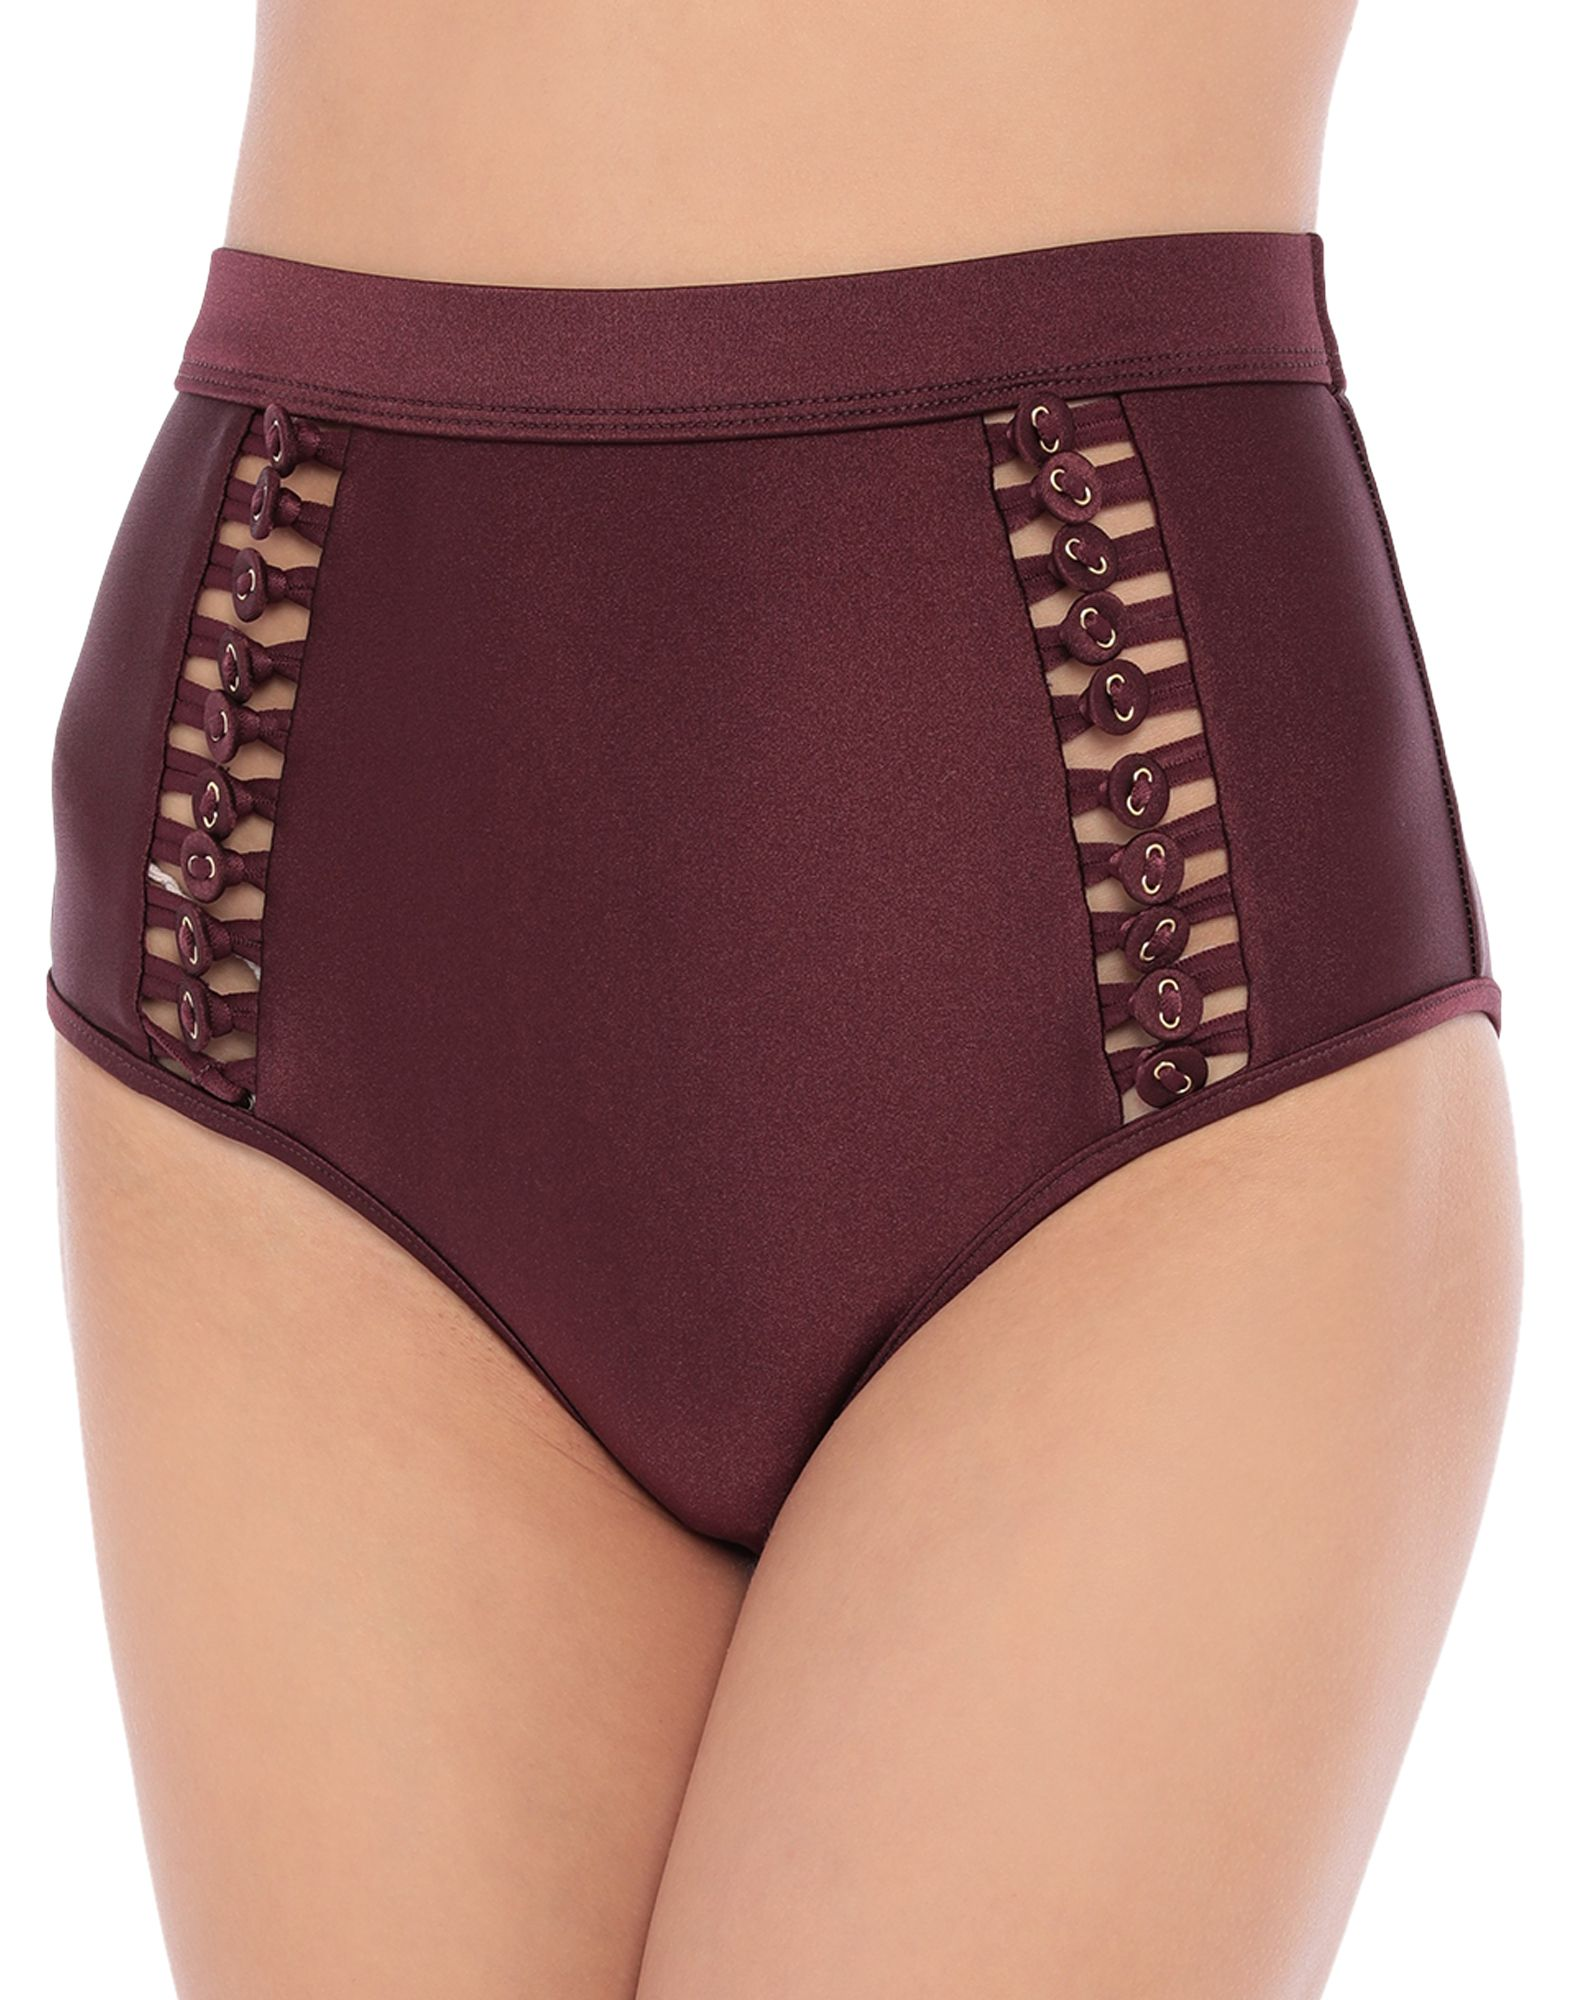 ZIMMERMANN Bikini bottoms. synthetic jersey, contrasting applications, basic solid color, stretch. 80% Polyamide, 20% Elastane